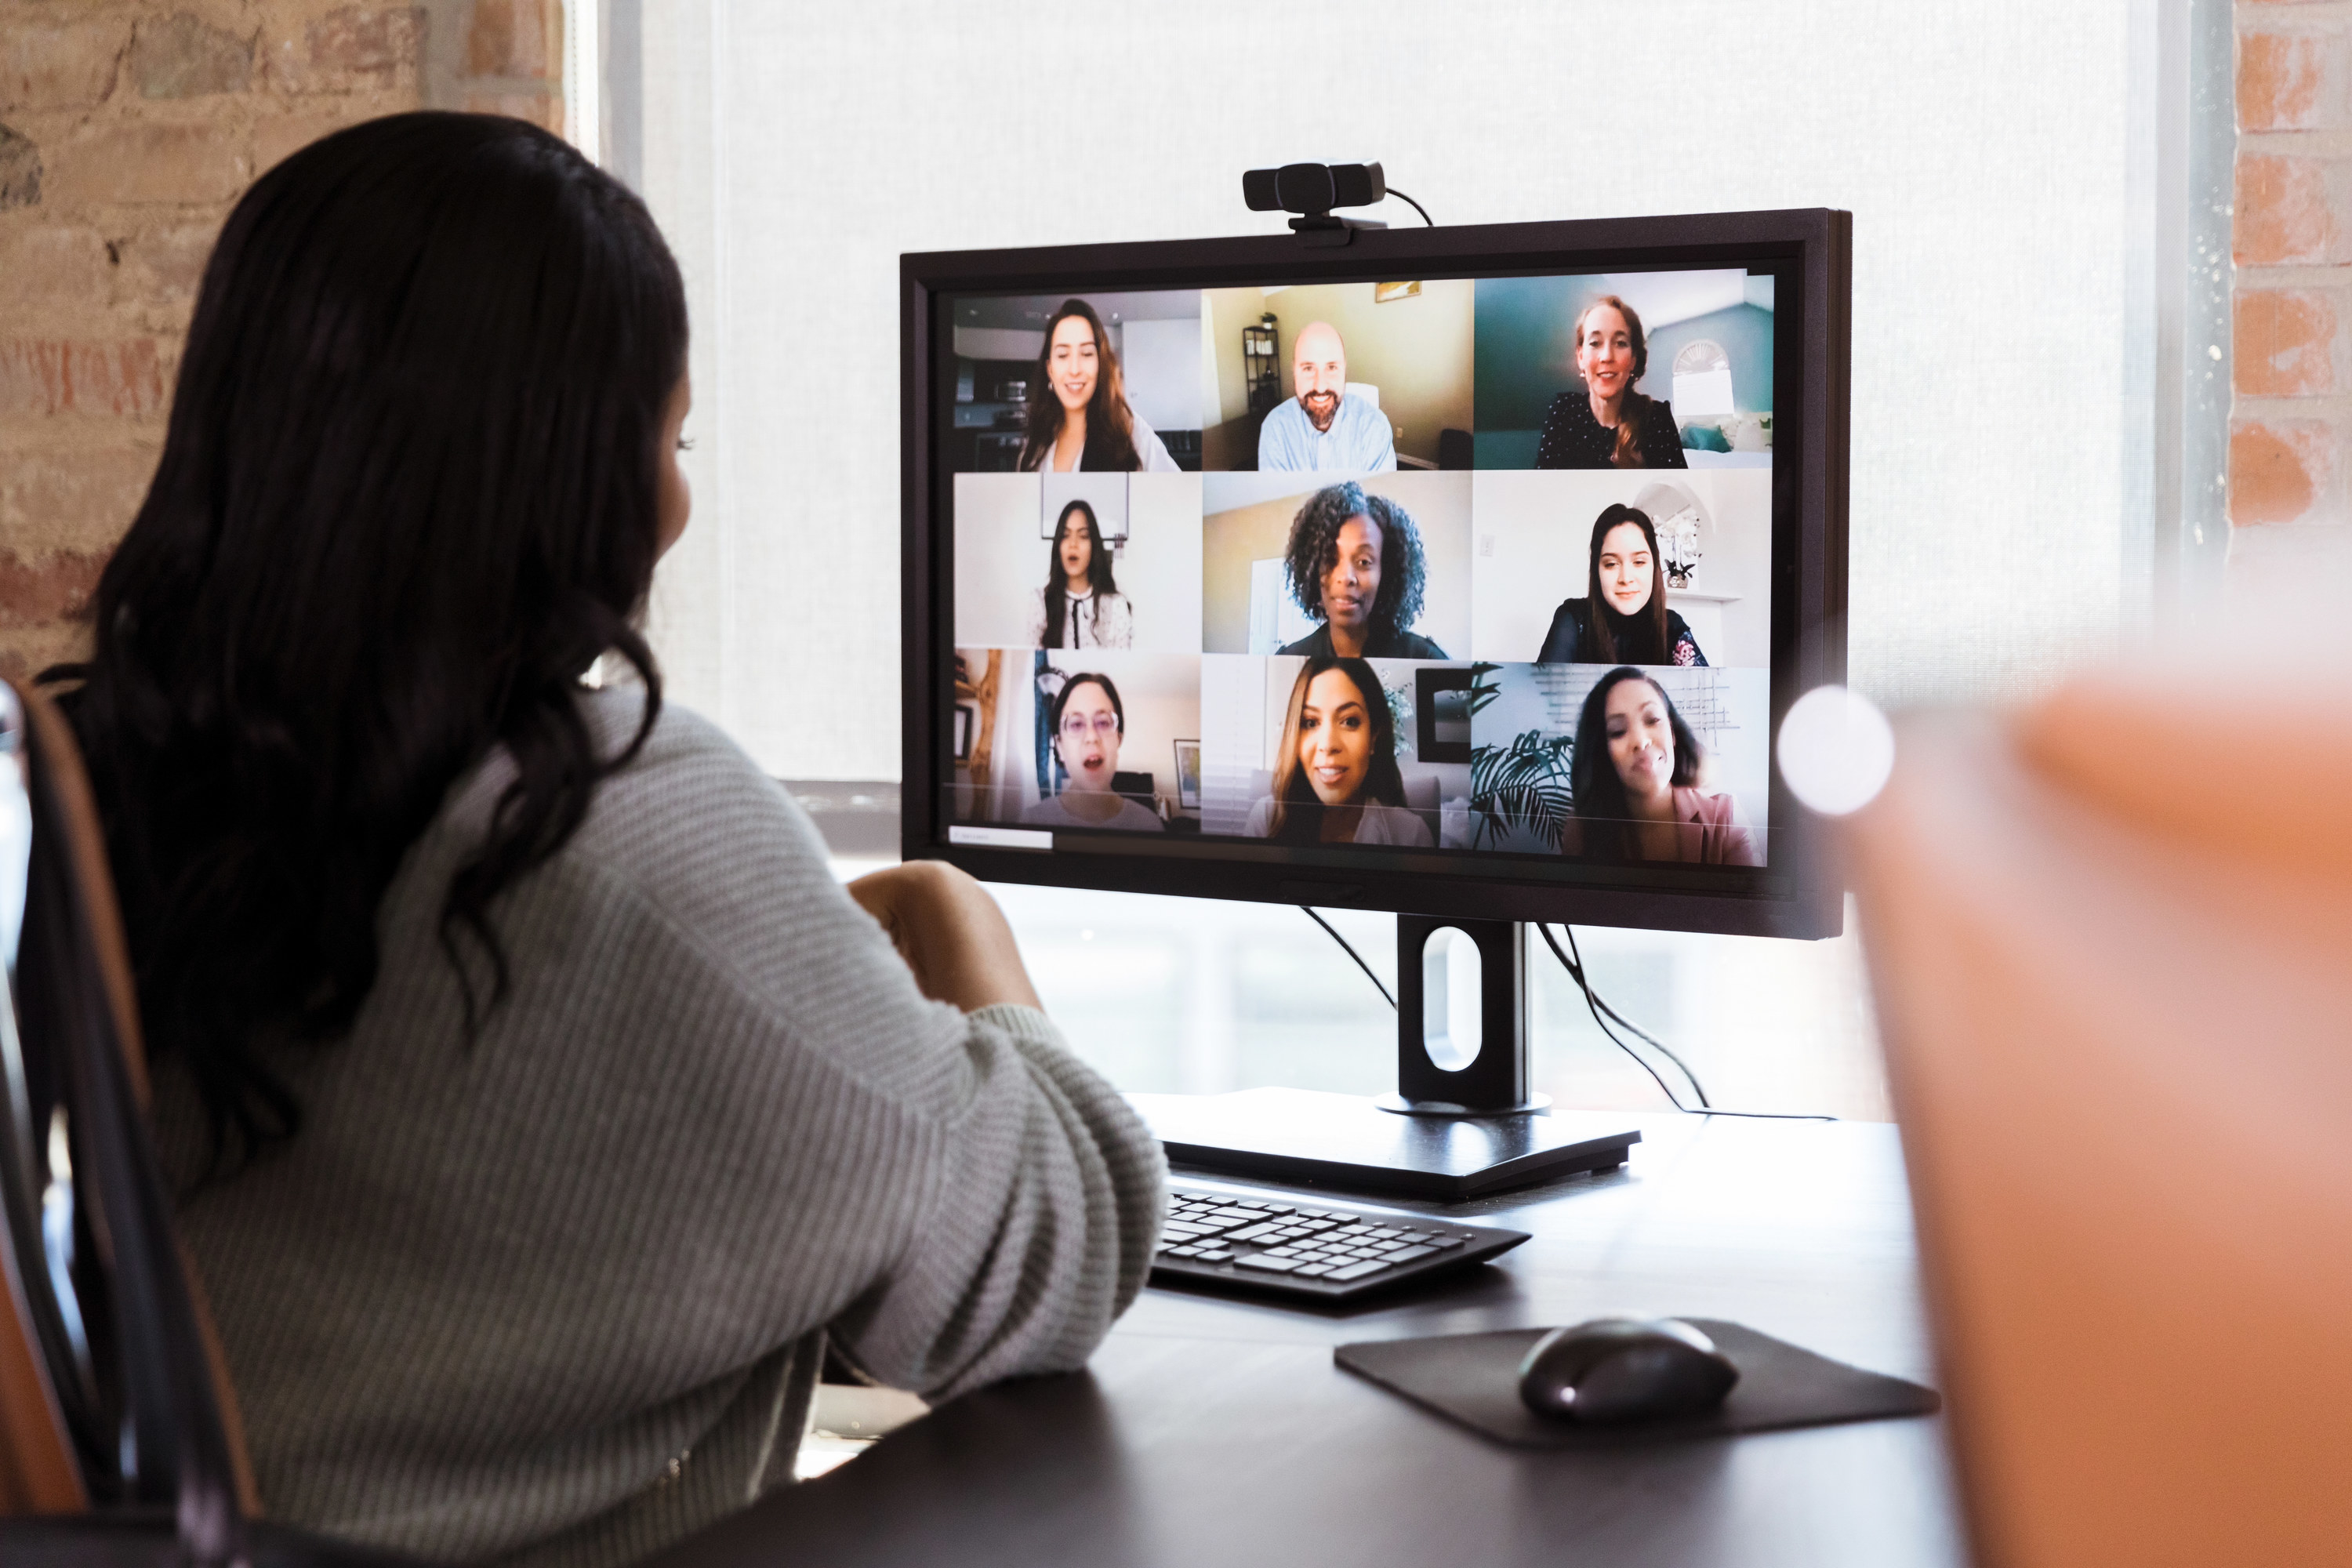 Women on a zoom call for work